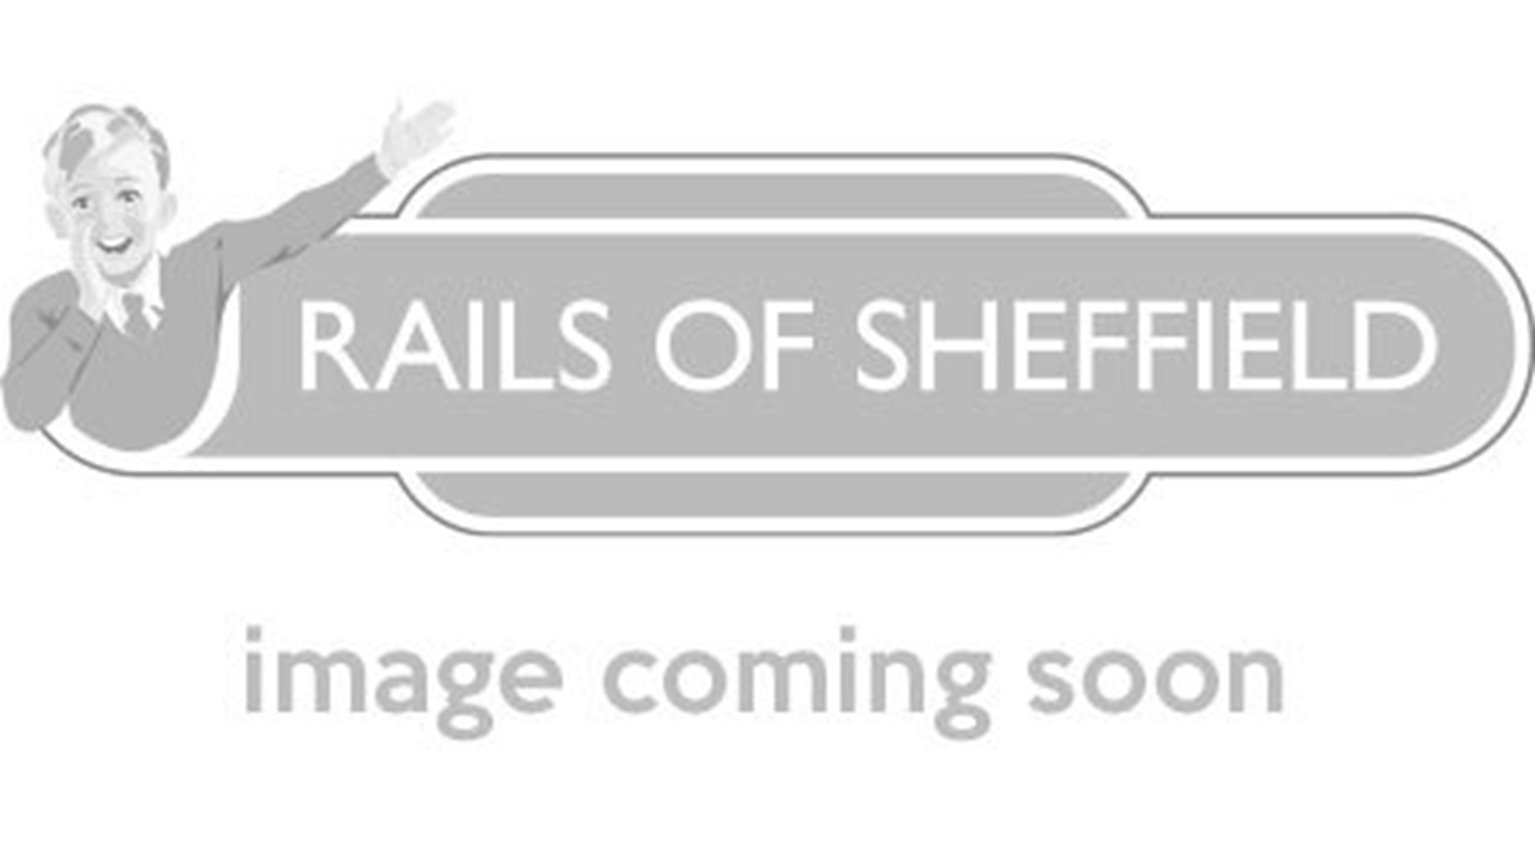 Stroudley Terrier A1X Class SR Southern Lined Green 0-6-0 Tank Locomotive No.2644 DCC Ready